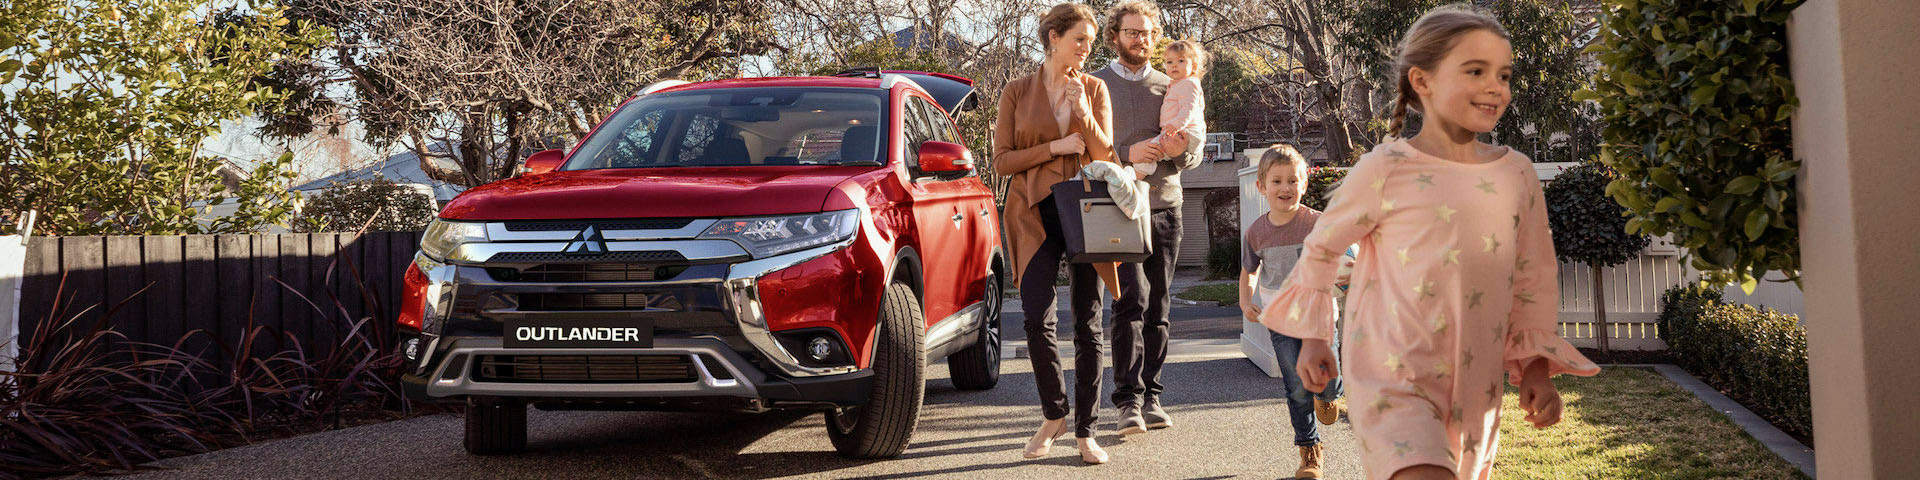 Get Finance at Alpine Mitsubishi Cooma, Snowy Mountains